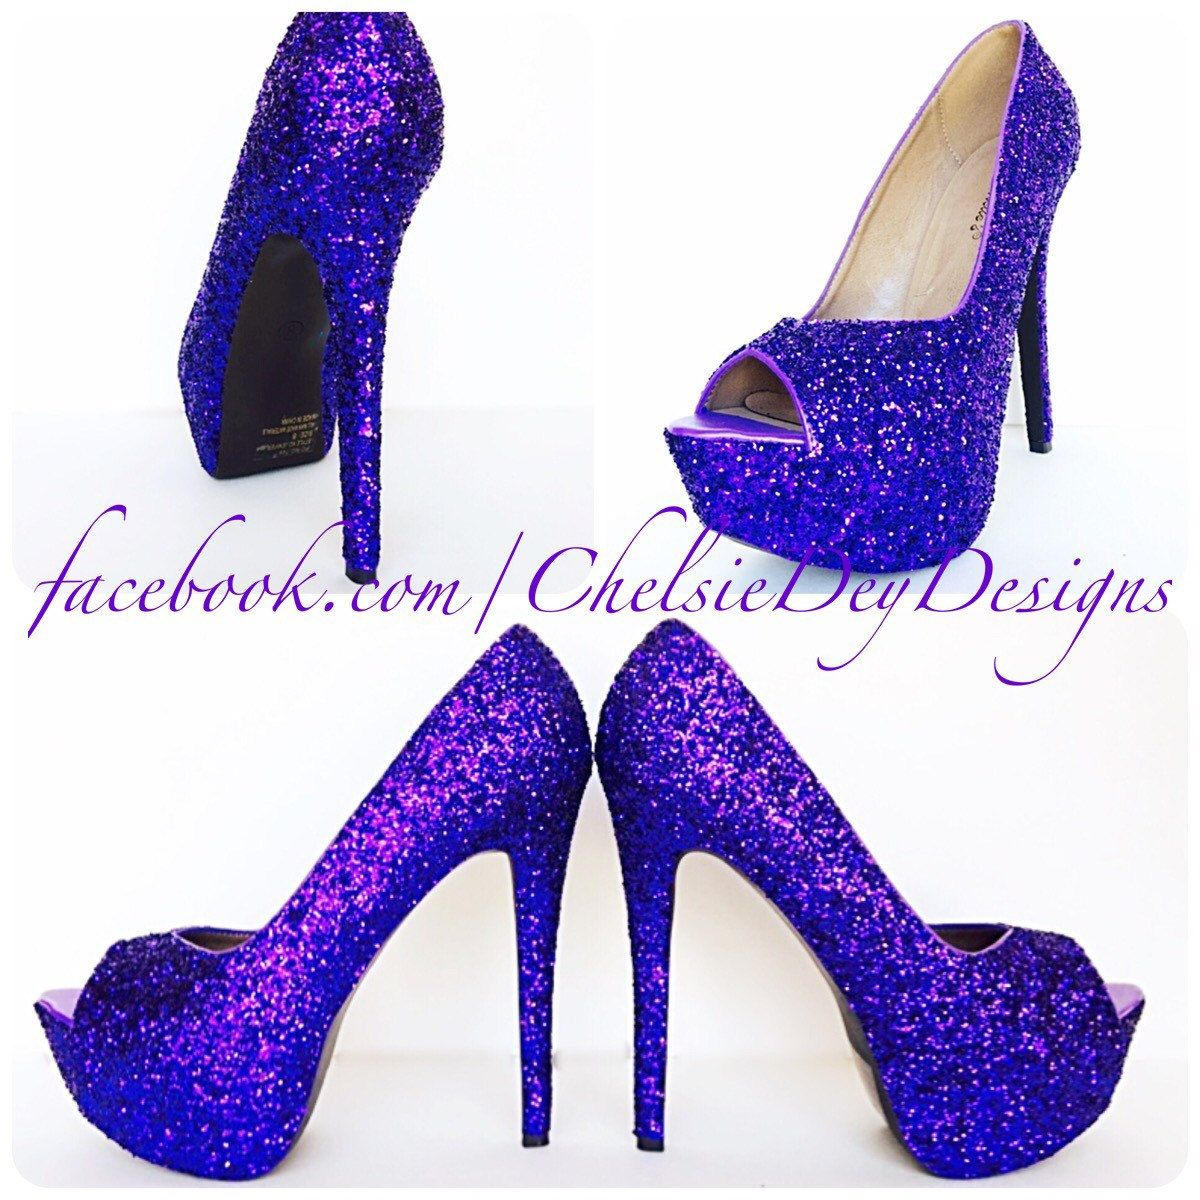 c5234214541e Purple Glitter High Heels - Royal Purple Peep Toe Pumps - Open Toe Wedding  Shoes - Platform Prom Shoes - Bridesmaid Shoes - pinned by pin4etsy.com